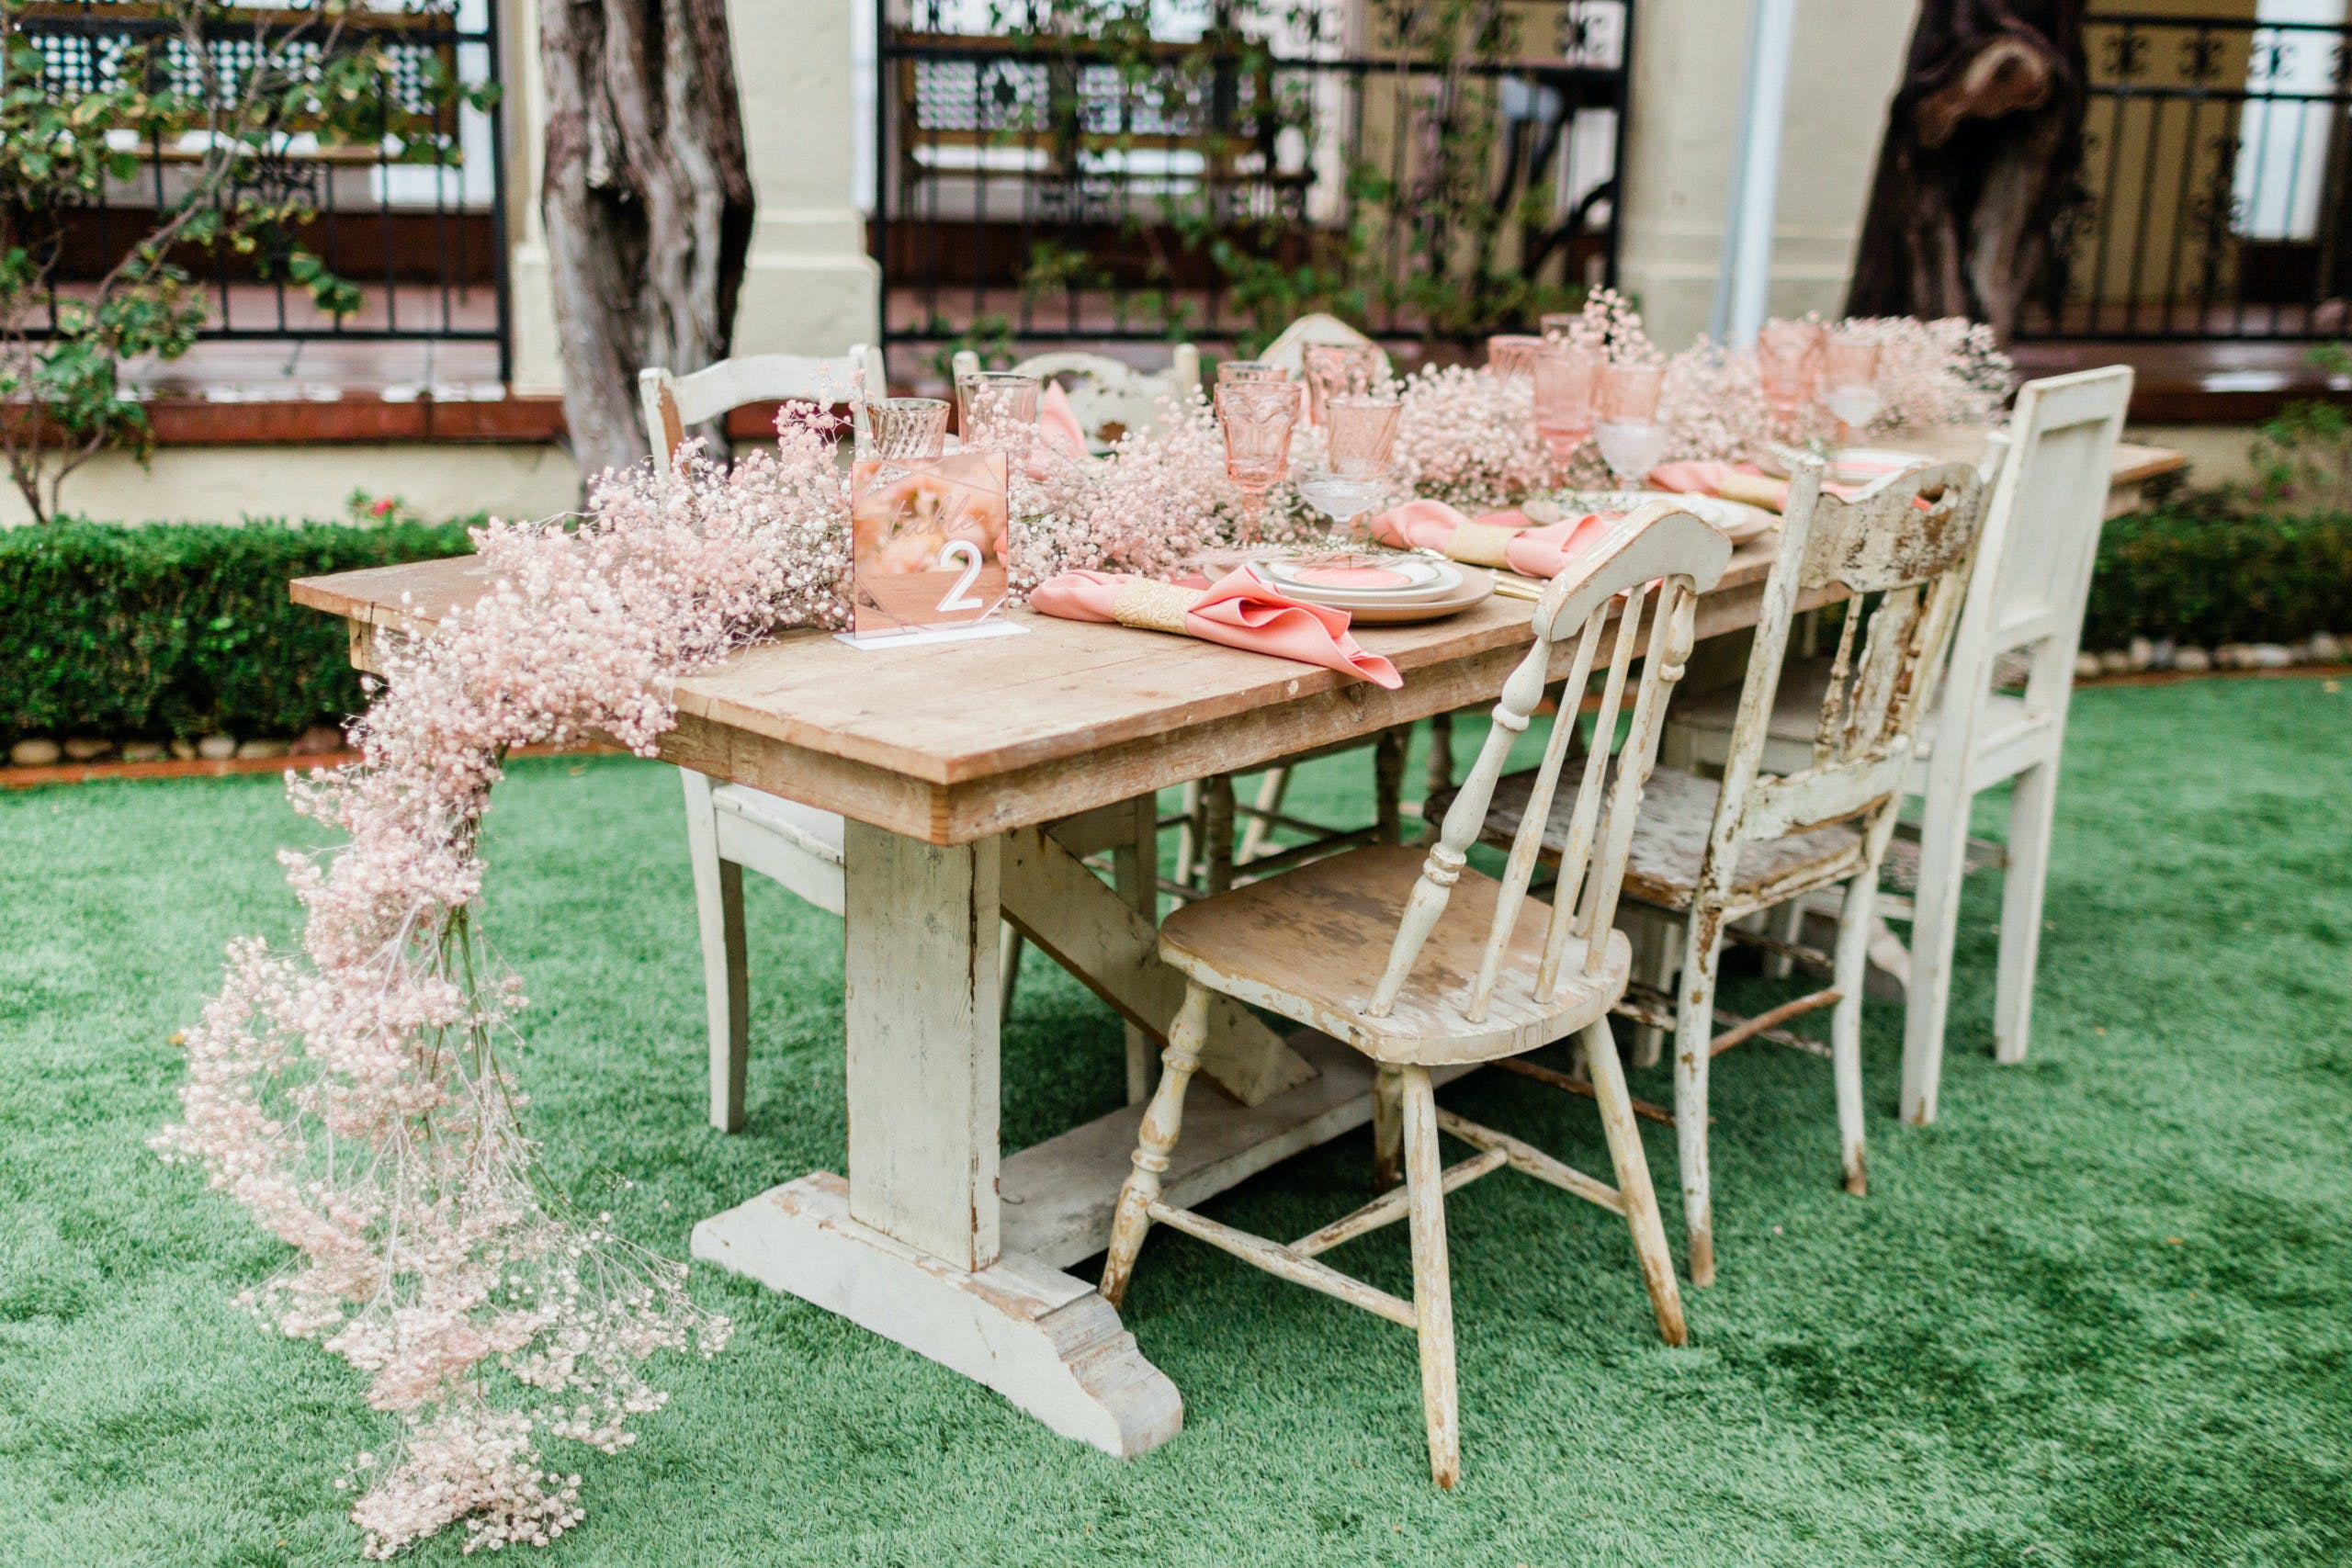 Rustic Wedding Tablescape With Pink Baby's Breath Centerpiece Cascading Off Table   PartySlate